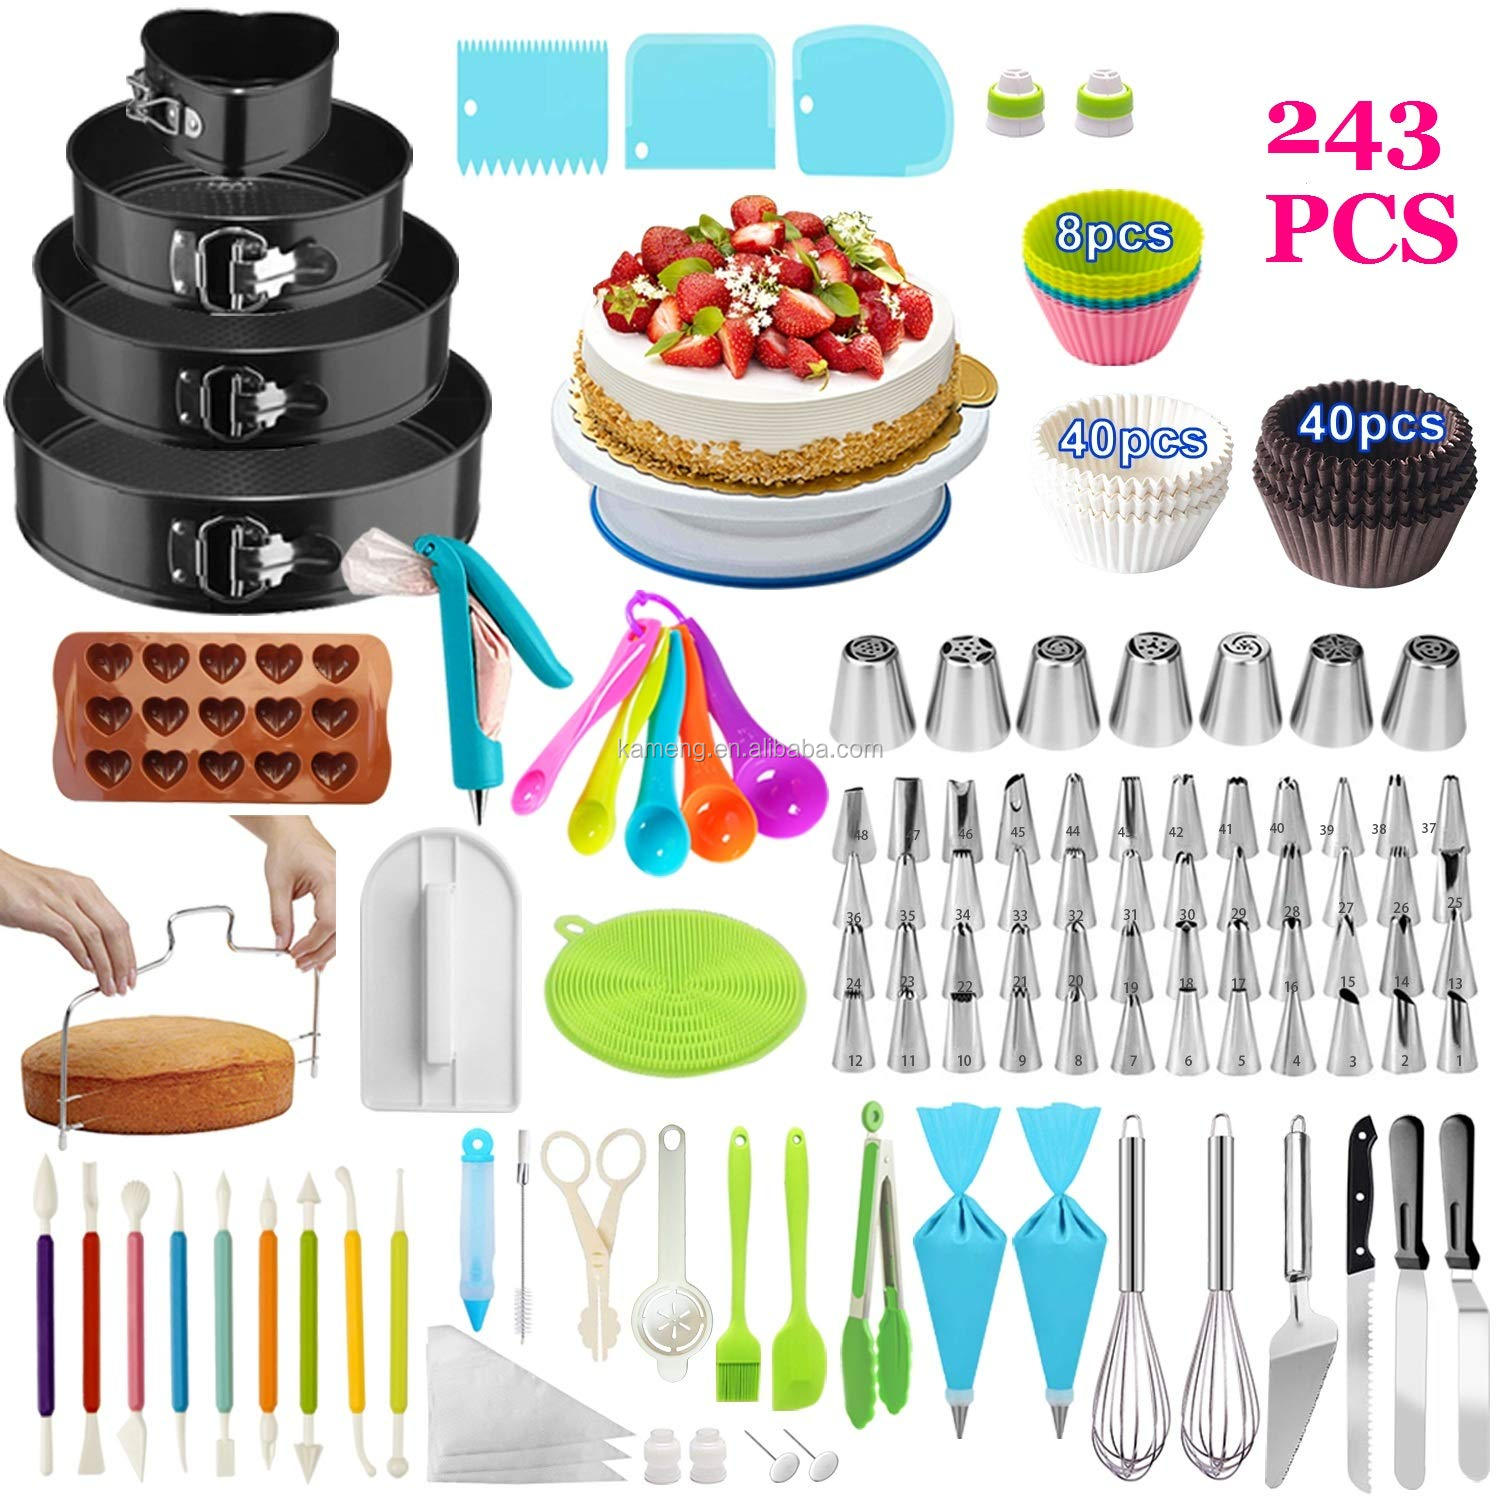 Buy Cake Decorating Supplies Online  from sc01.alicdn.com